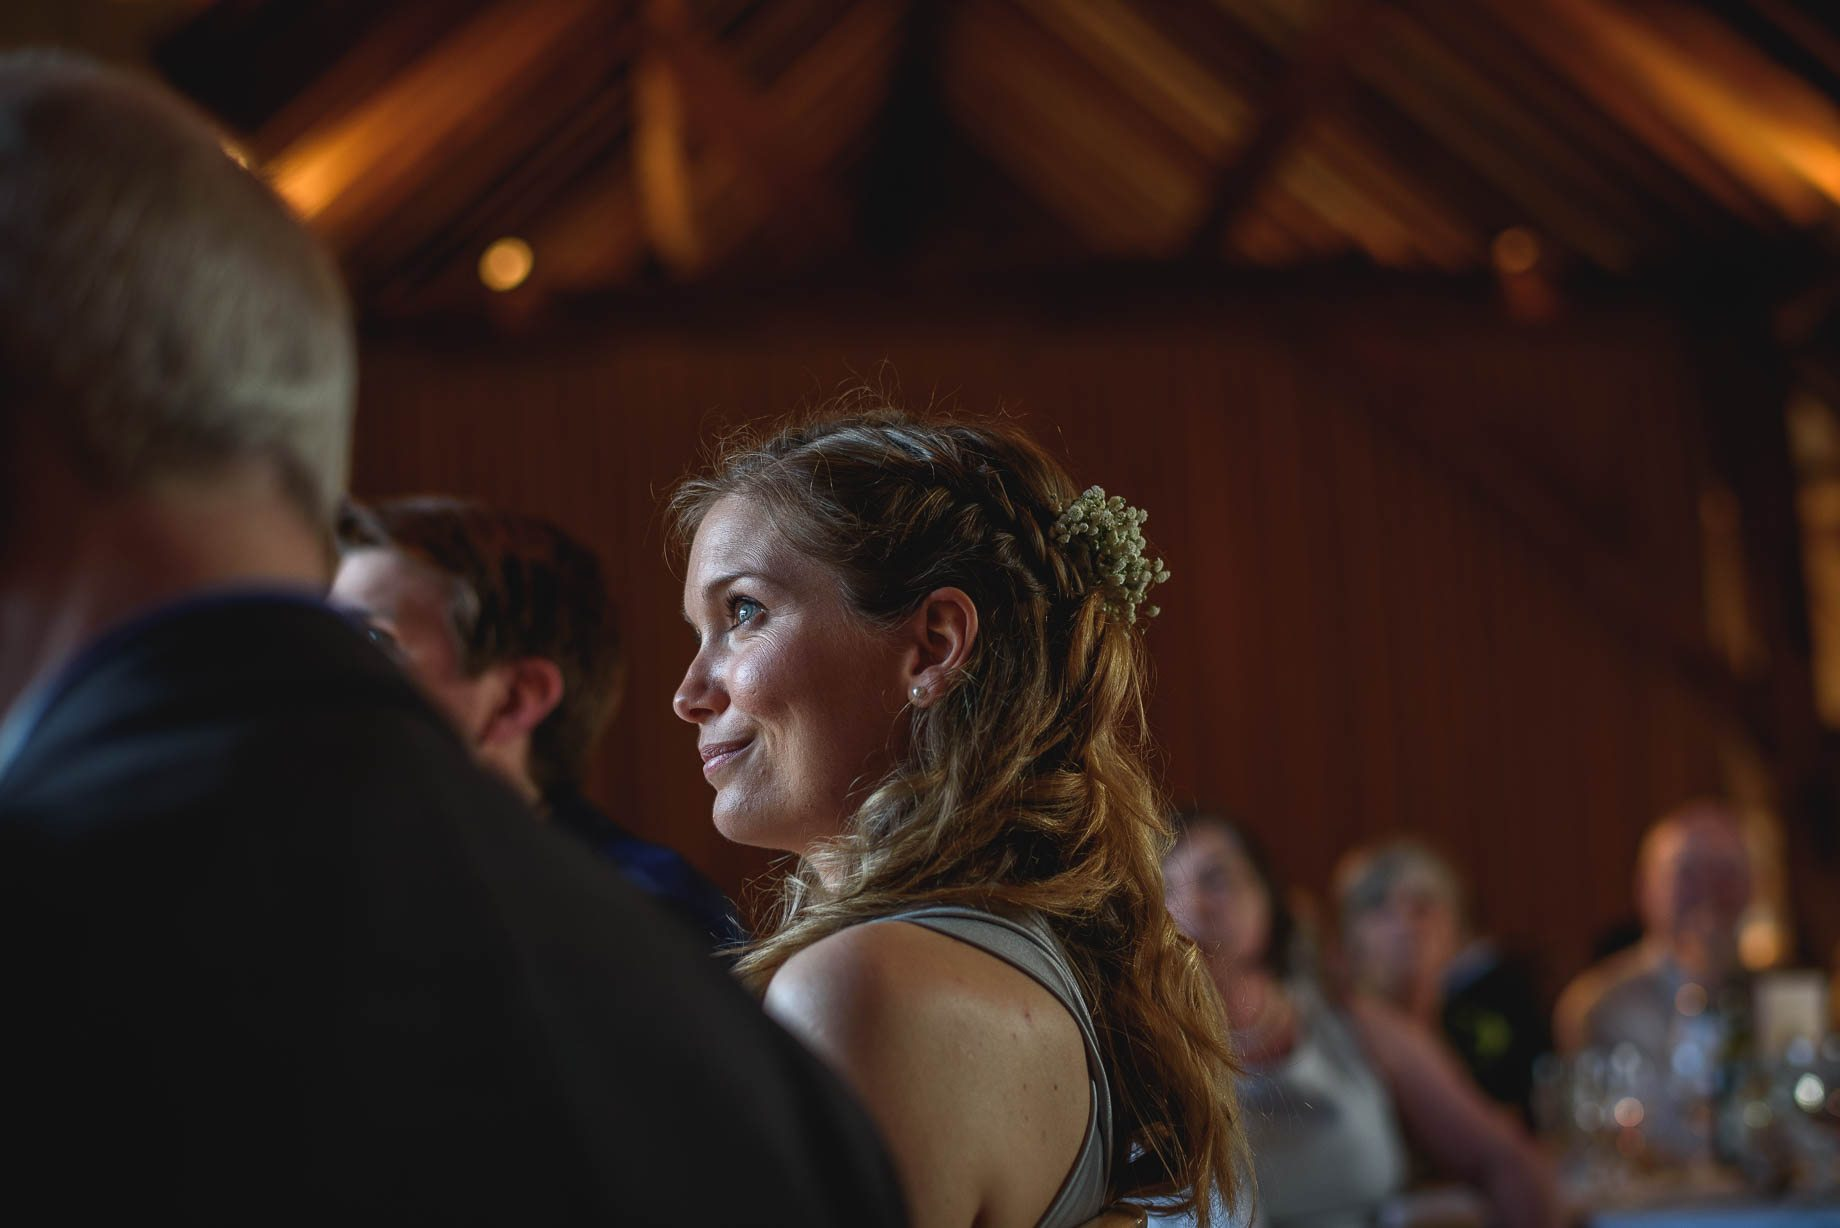 Bury Court Barn wedding photography by Guy Collier - Heather and Pat (120 of 170)